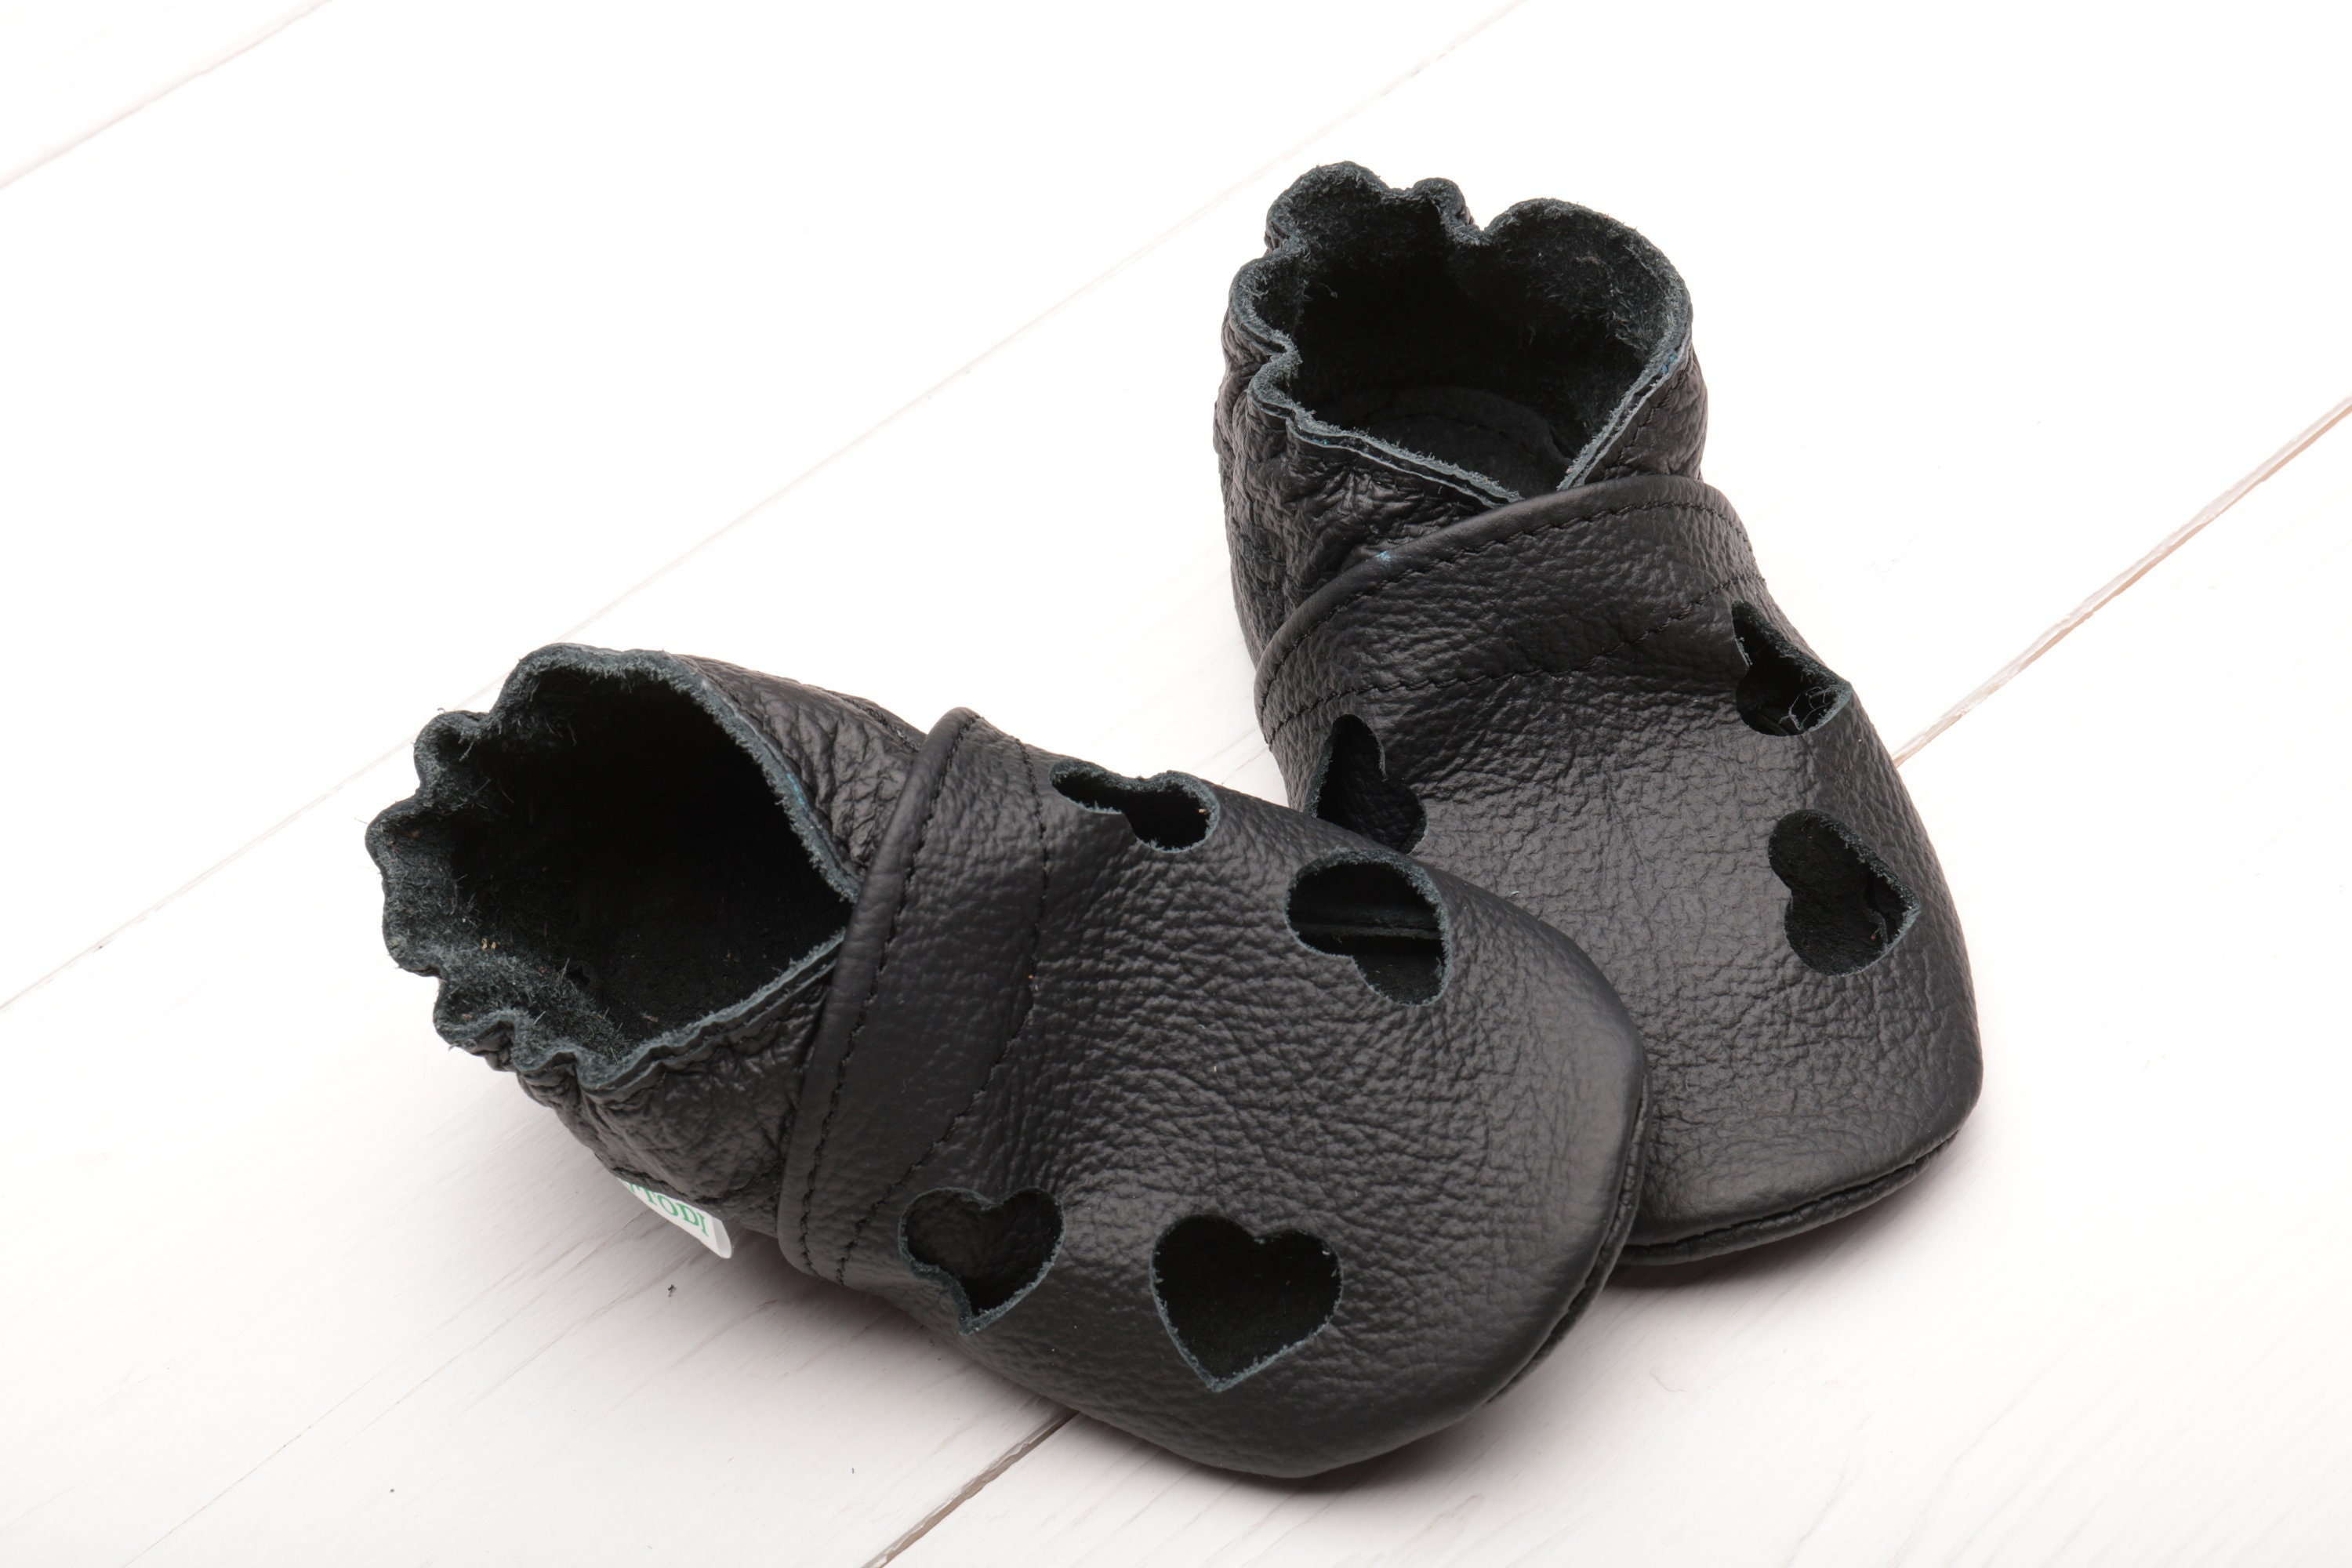 92398f79a4b08 Black Baby Shoes, Leather Baby Shoes, Soft Sole Baby Sandals, Girls',  Newborn Shoes, Boys', Infant Shoes, Summer Toddler Shoes, Handmade